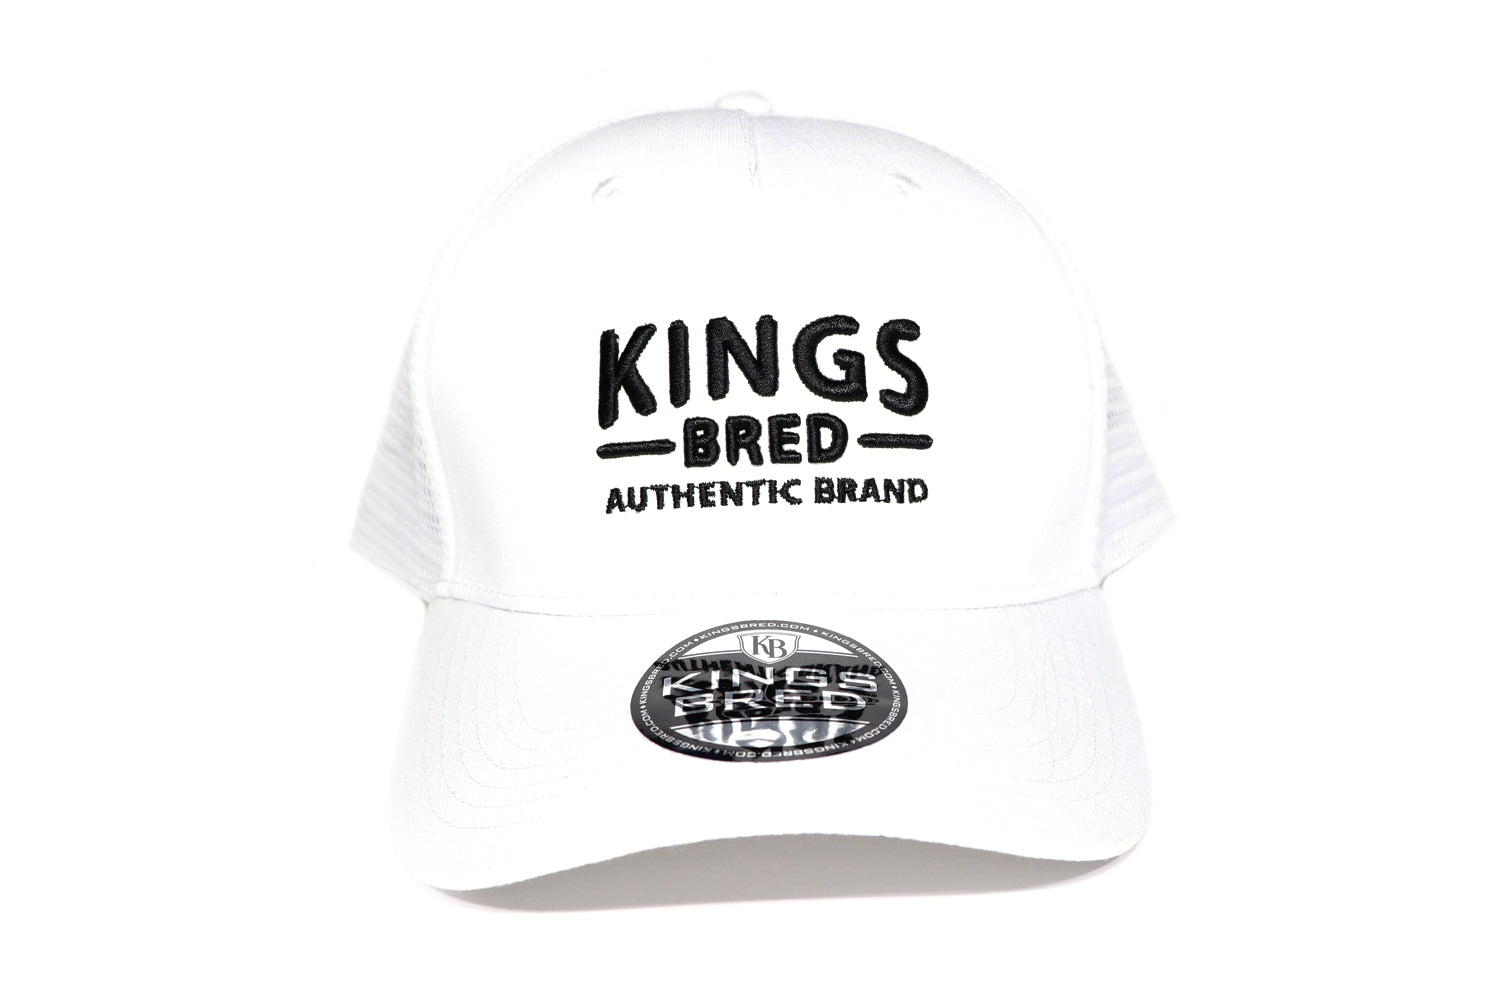 f920051ddb877 Authentic Brand - White Ghost - Retro Trucker – KINGS BRED